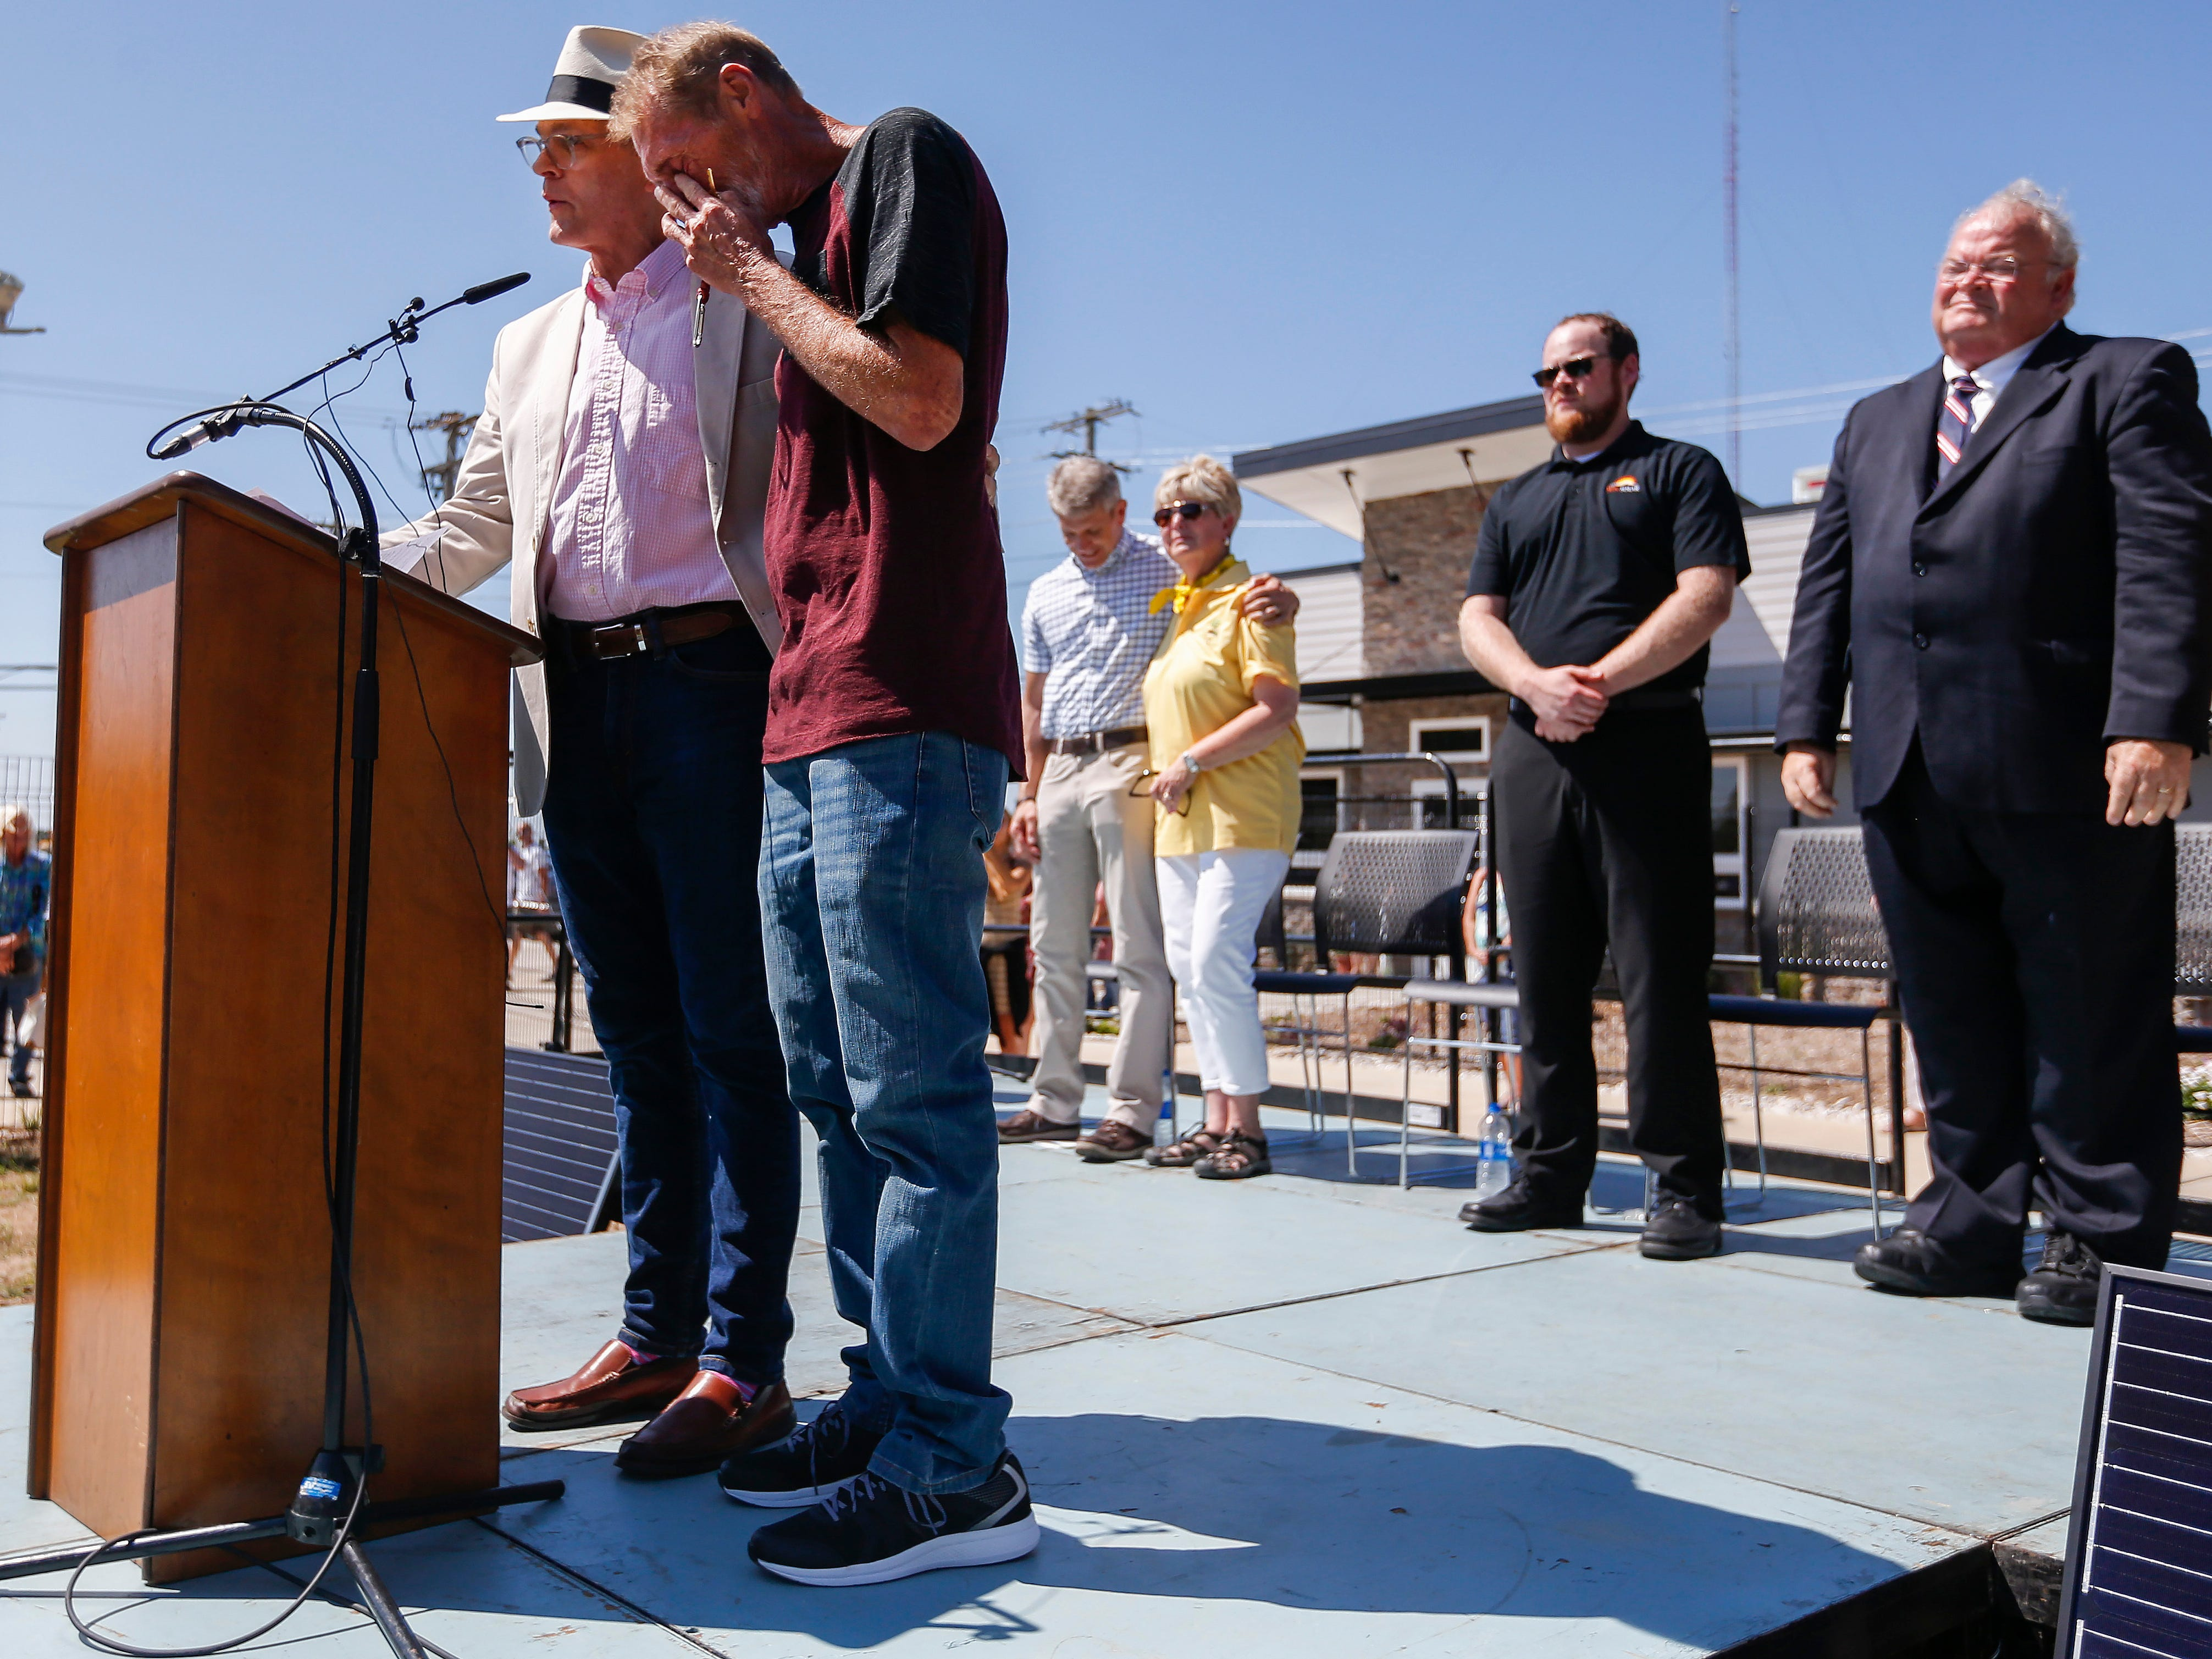 Tommy Yarberry, right, wipes a tear from his eye as Pastor Phillip Wright says a prayer for him during the Eden Village Grand Opening Ceremony on Tuesday, Aug. 28, 2018.